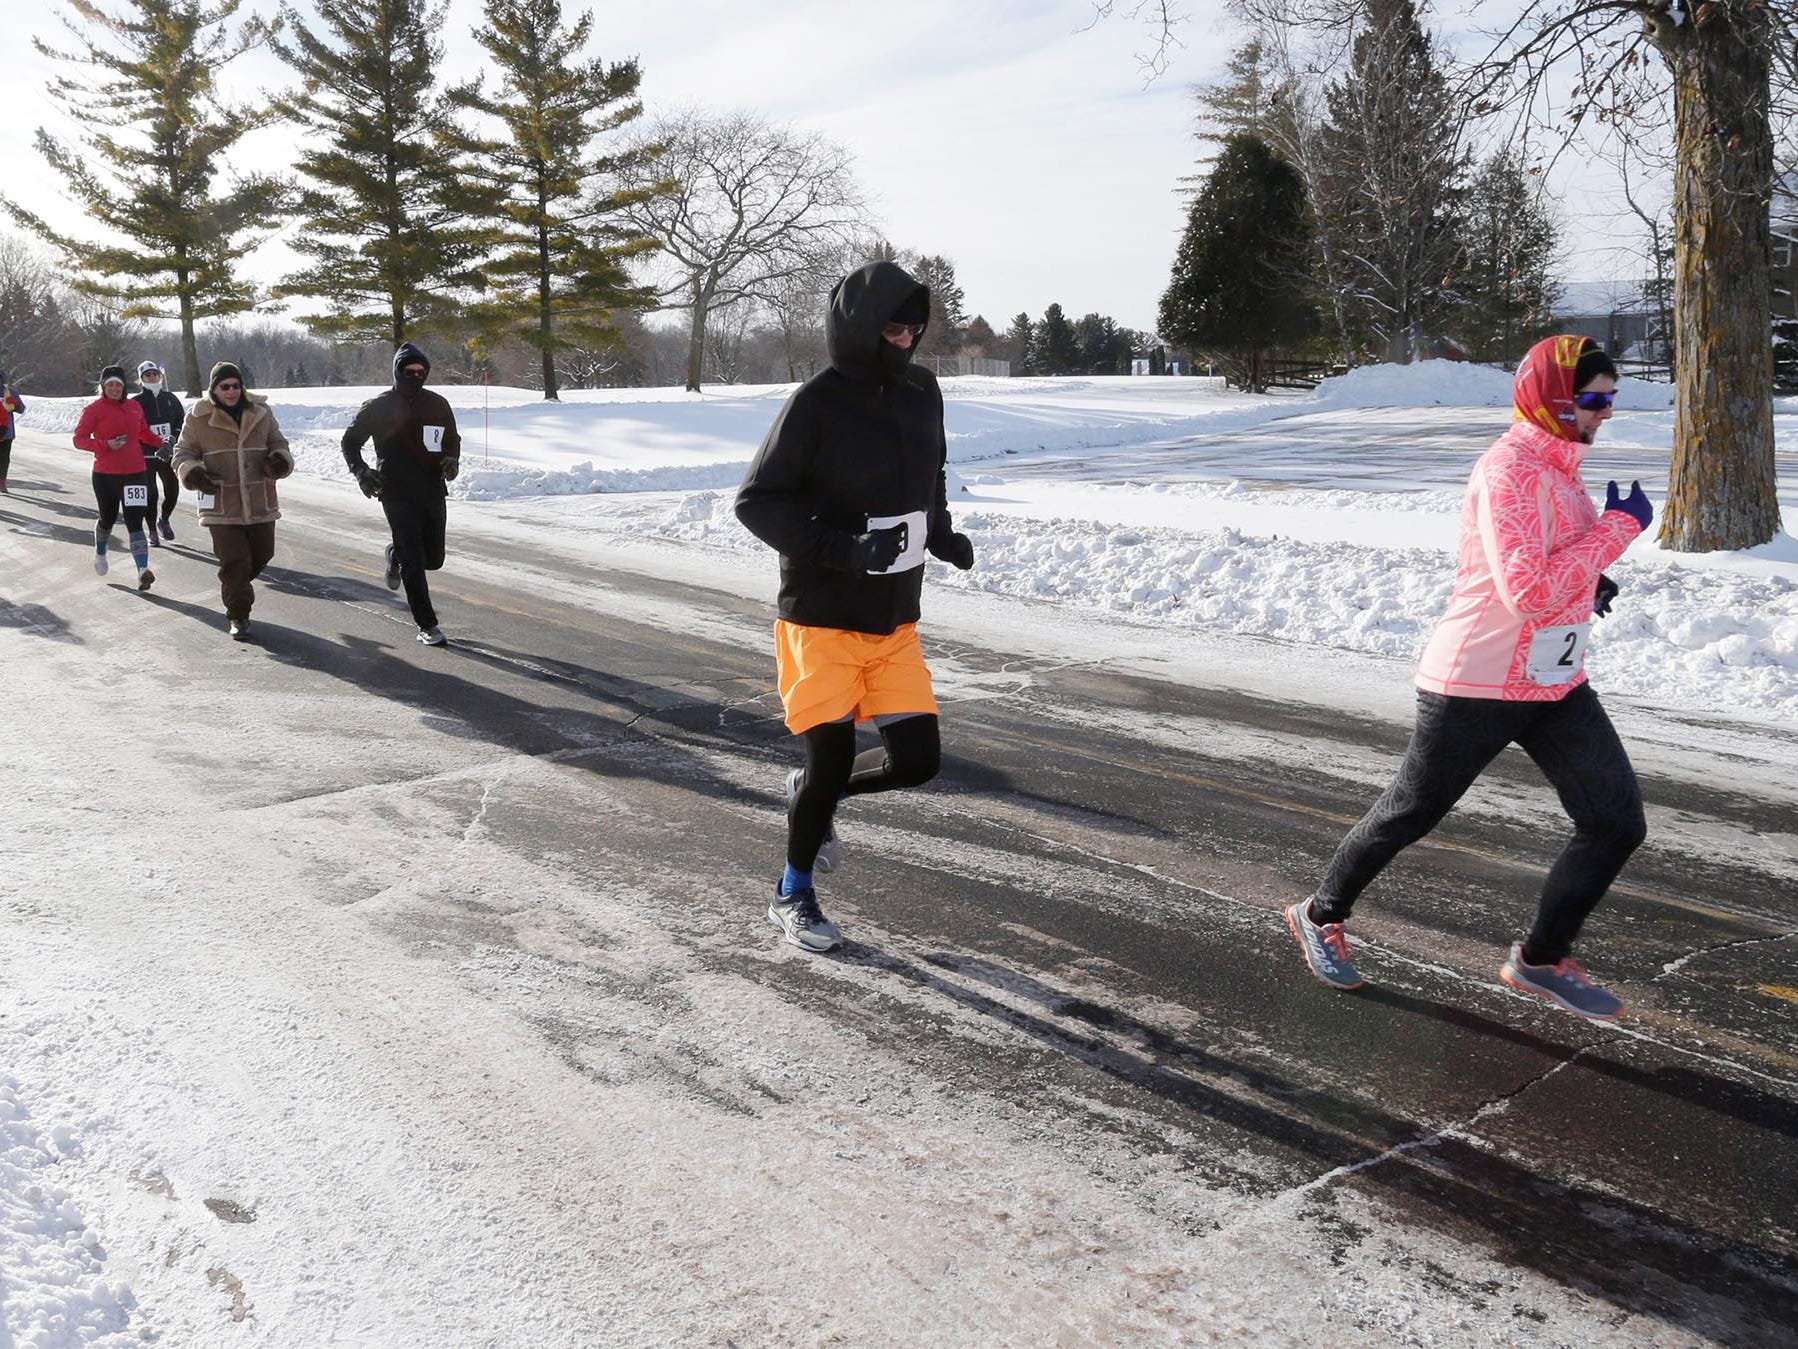 Runners at the start of the Schneelauf Riun, Saturday, January 26, 2019, in Elkhart Lake, Wis. The two-mile run is part of Schnee Days in the village.